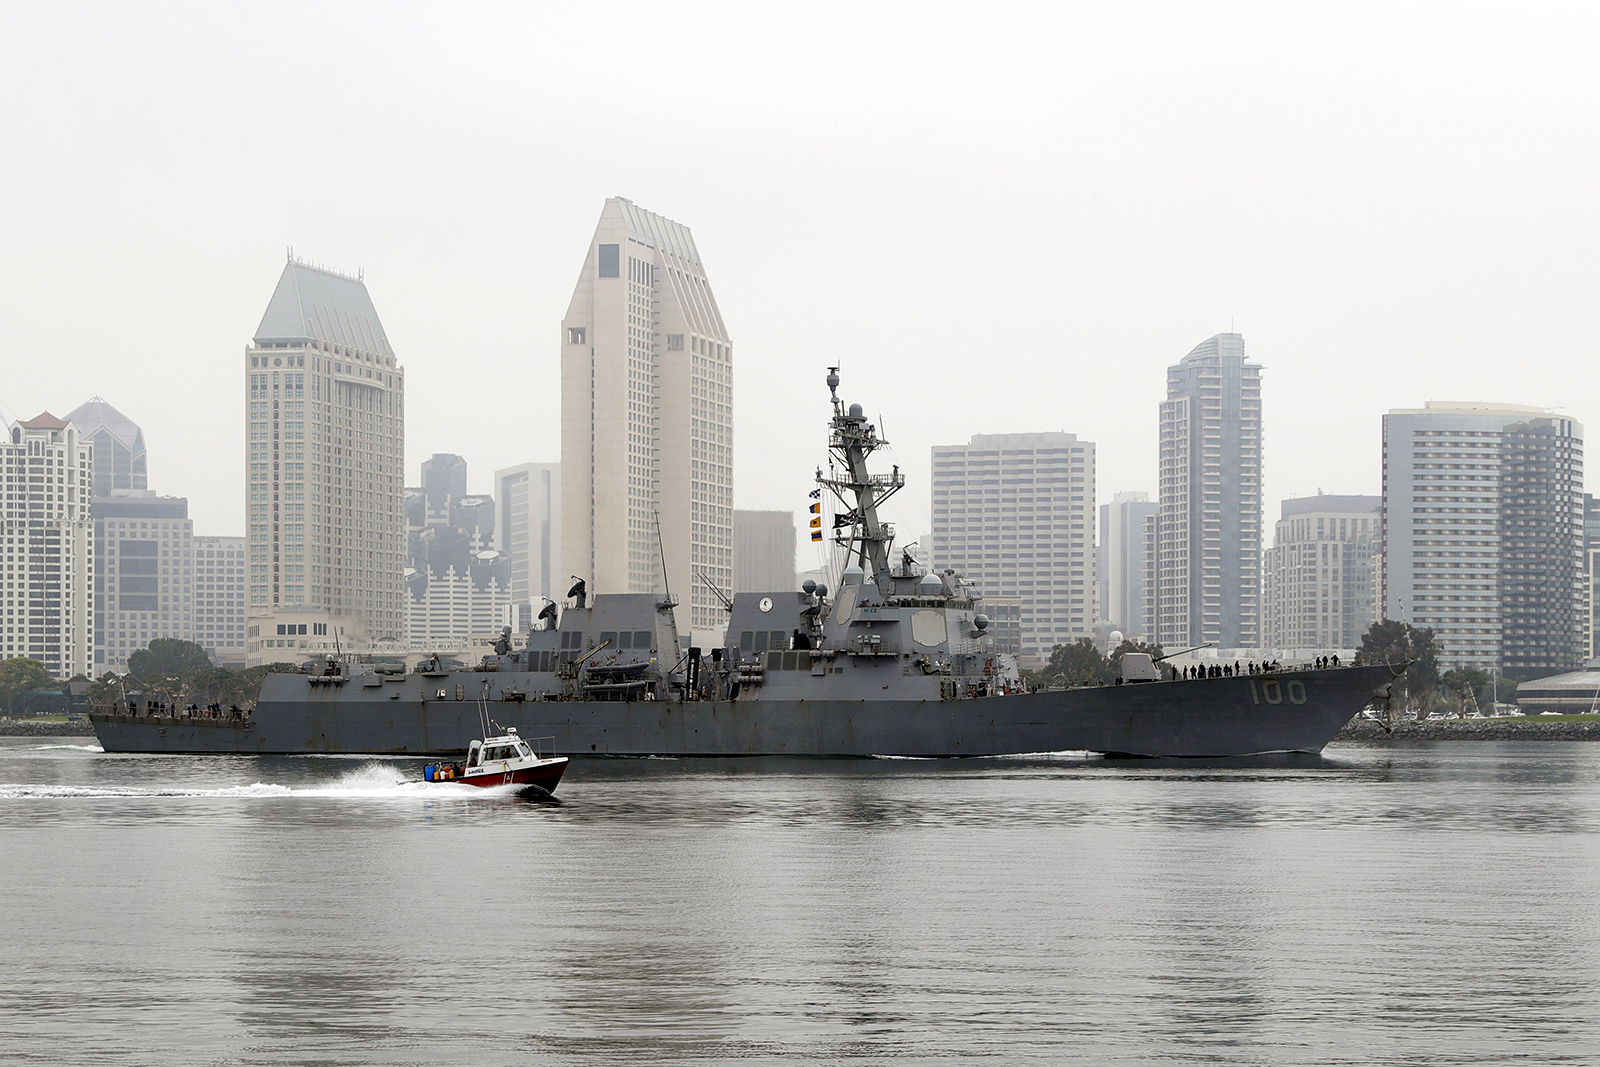 The USS Kidd passes downtown San Diego as it returns to Naval Base San Diego on April 28, 2020, seen from Coronado, California. (AP Photo/Gregory Bull)